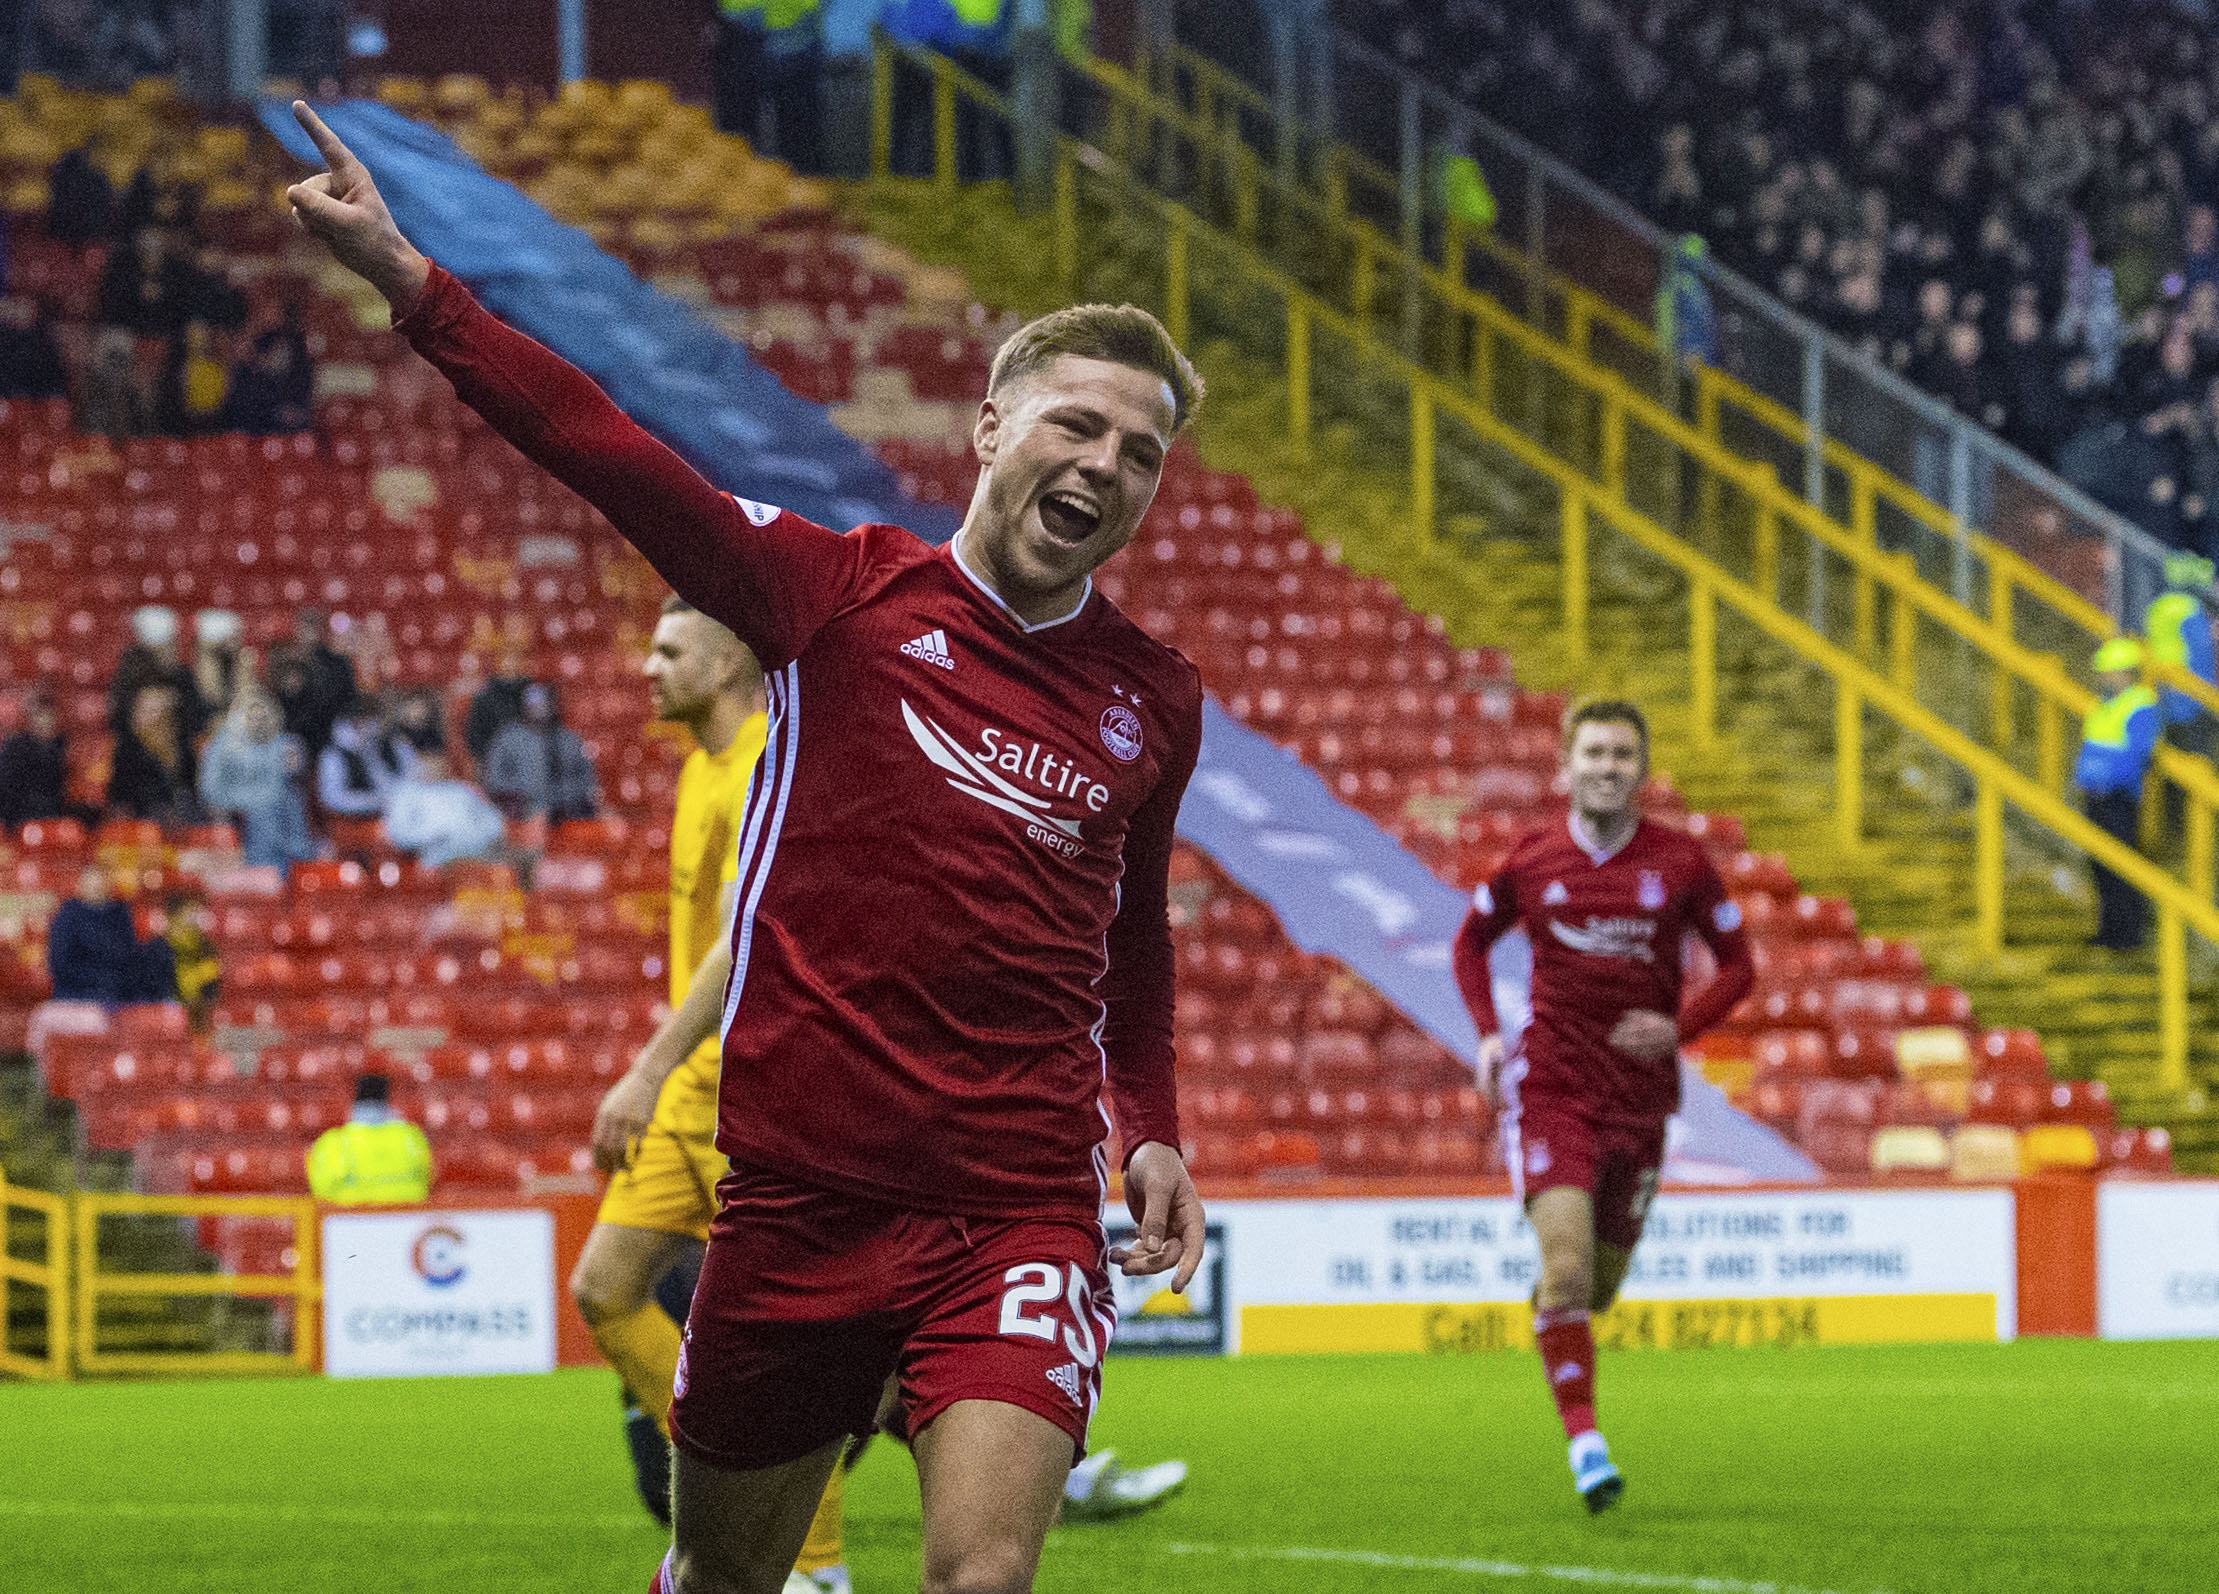 Aberdeen's Bruce Anderson makes it 2-0 during the Ladbrokes Premiership match between Aberdeen and Livingston.